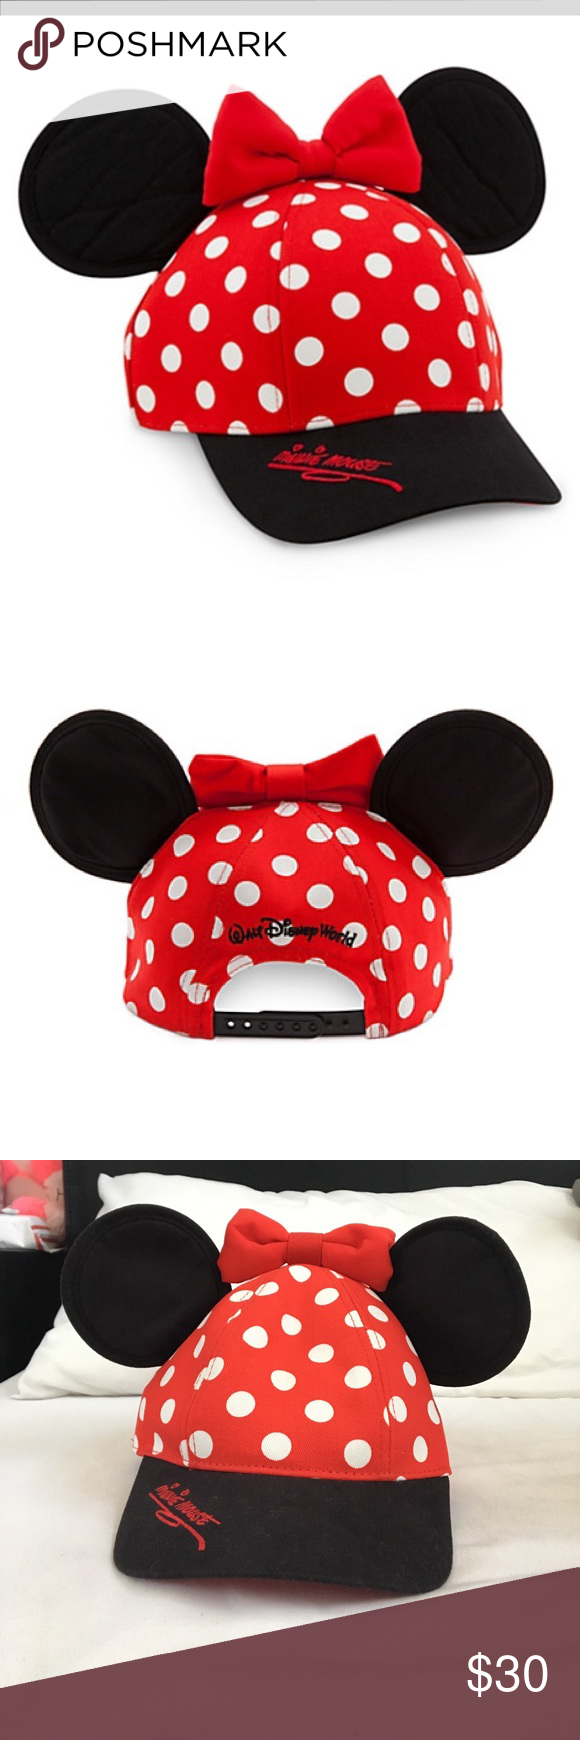 Minnie Mouse Disneyland Head Gear Bundle This is a bundle of  1-Minnie Mouse  Ears head band(plush) and 1- Minnie Mouse Baseball cap style with ears. 1679c4910005